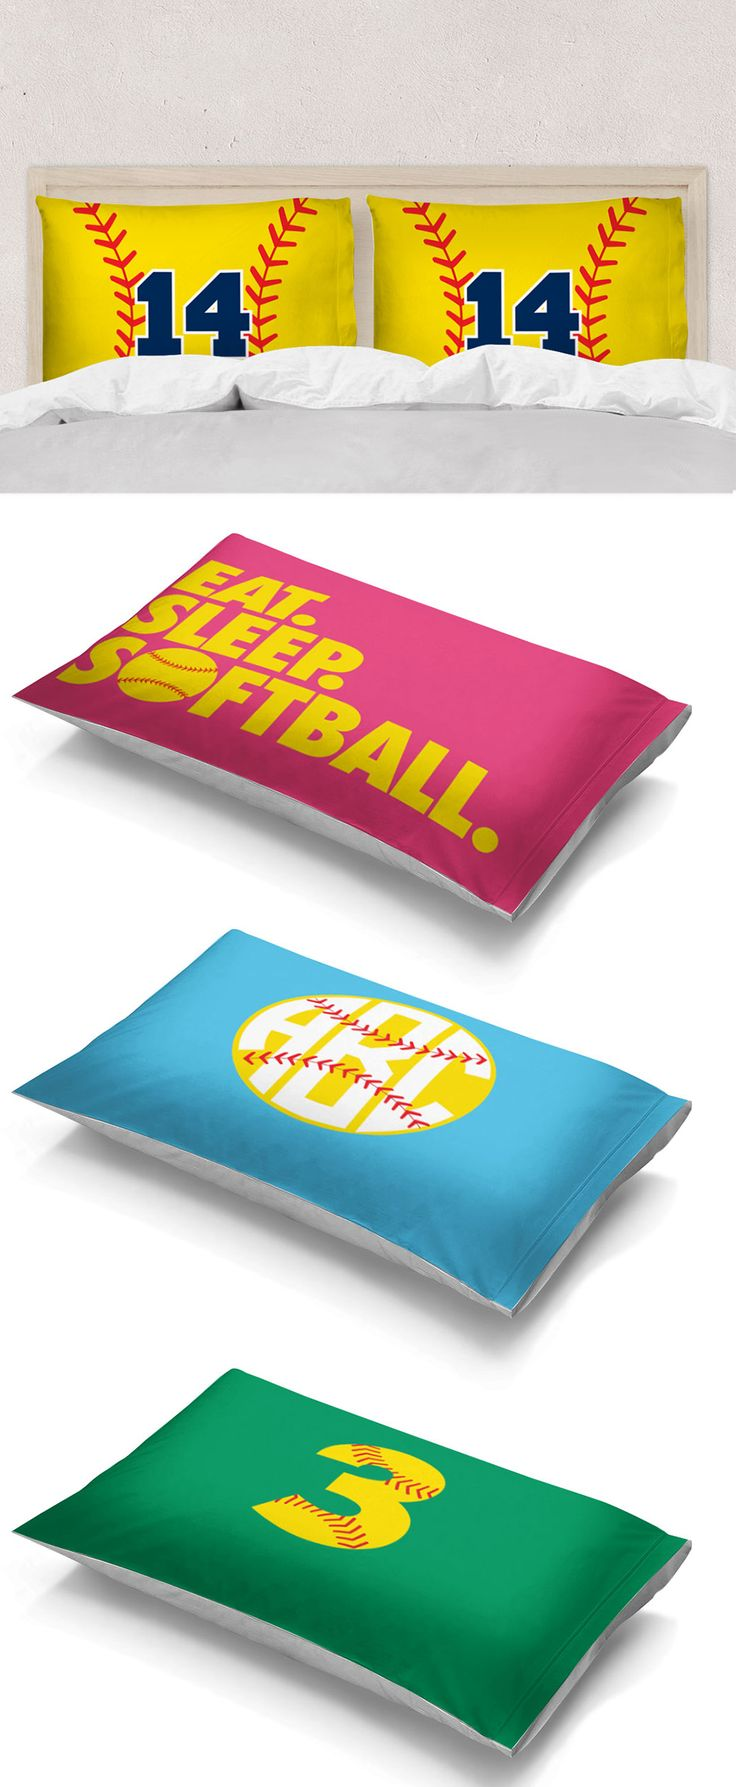 We don't know a softball player that wouldn't love a softball pillowcase on their bed! With personalized and custom options with dozens of color combinations to choose from, we know you'll find the perfect fit for their personal style.